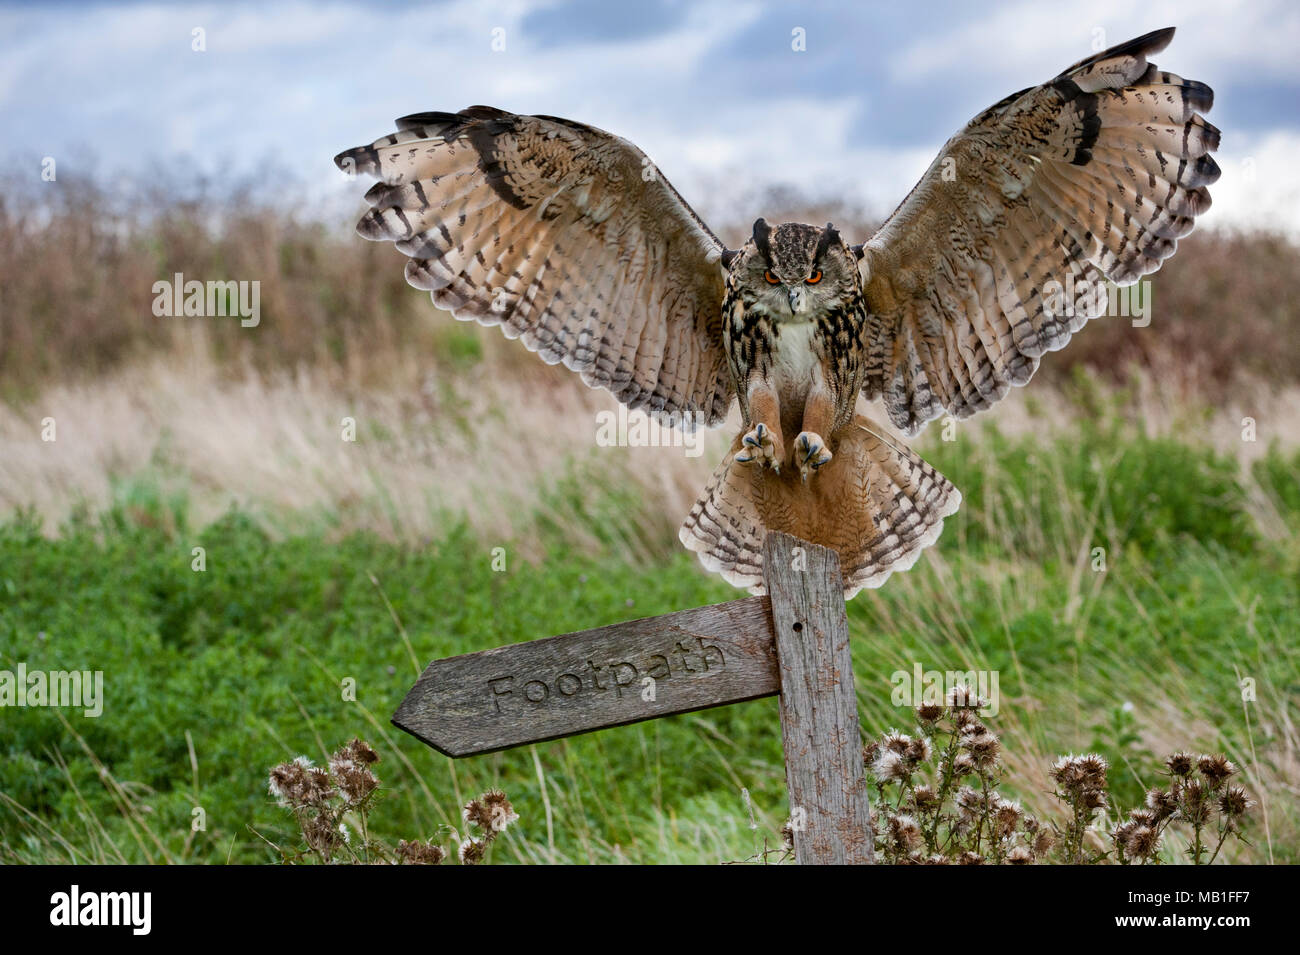 Eurasian eagle owl (Bubo bubo) landing with open wings on signpost in meadow at dusk, England, UK - Stock Image